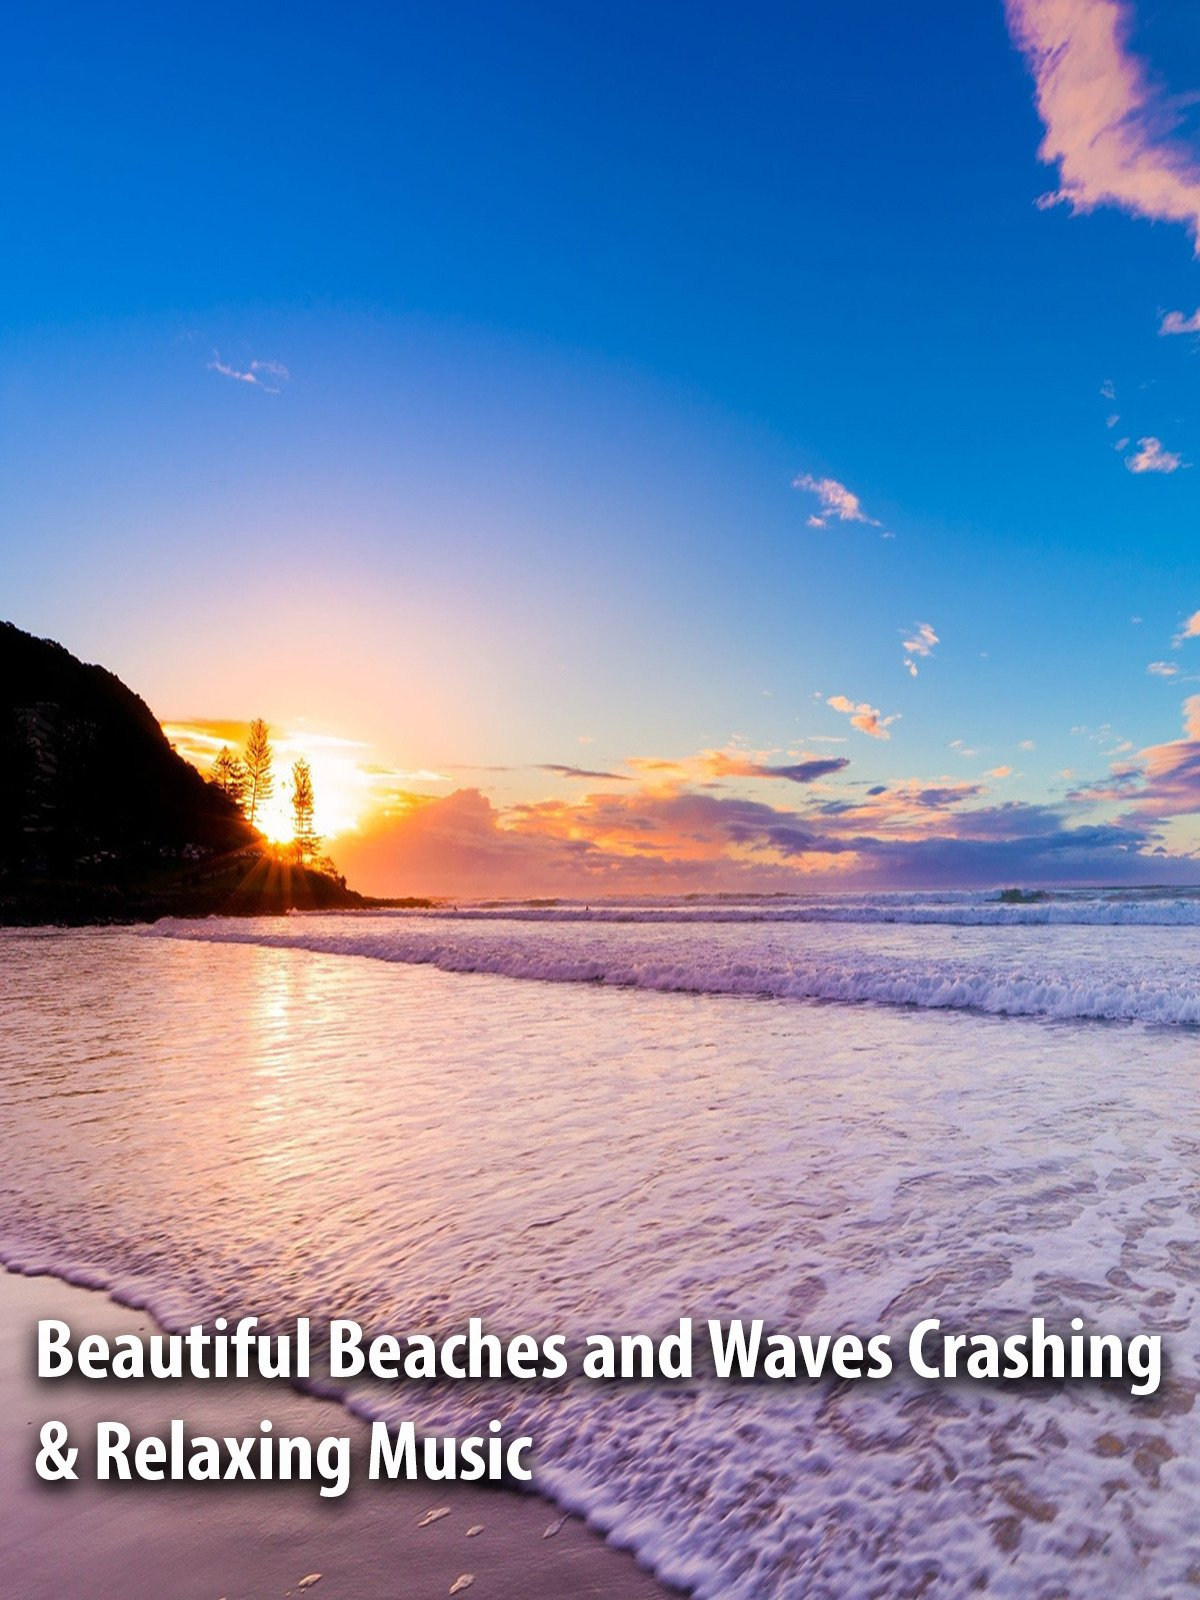 Beautiful Beaches and Waves Crashing & Relaxing Music